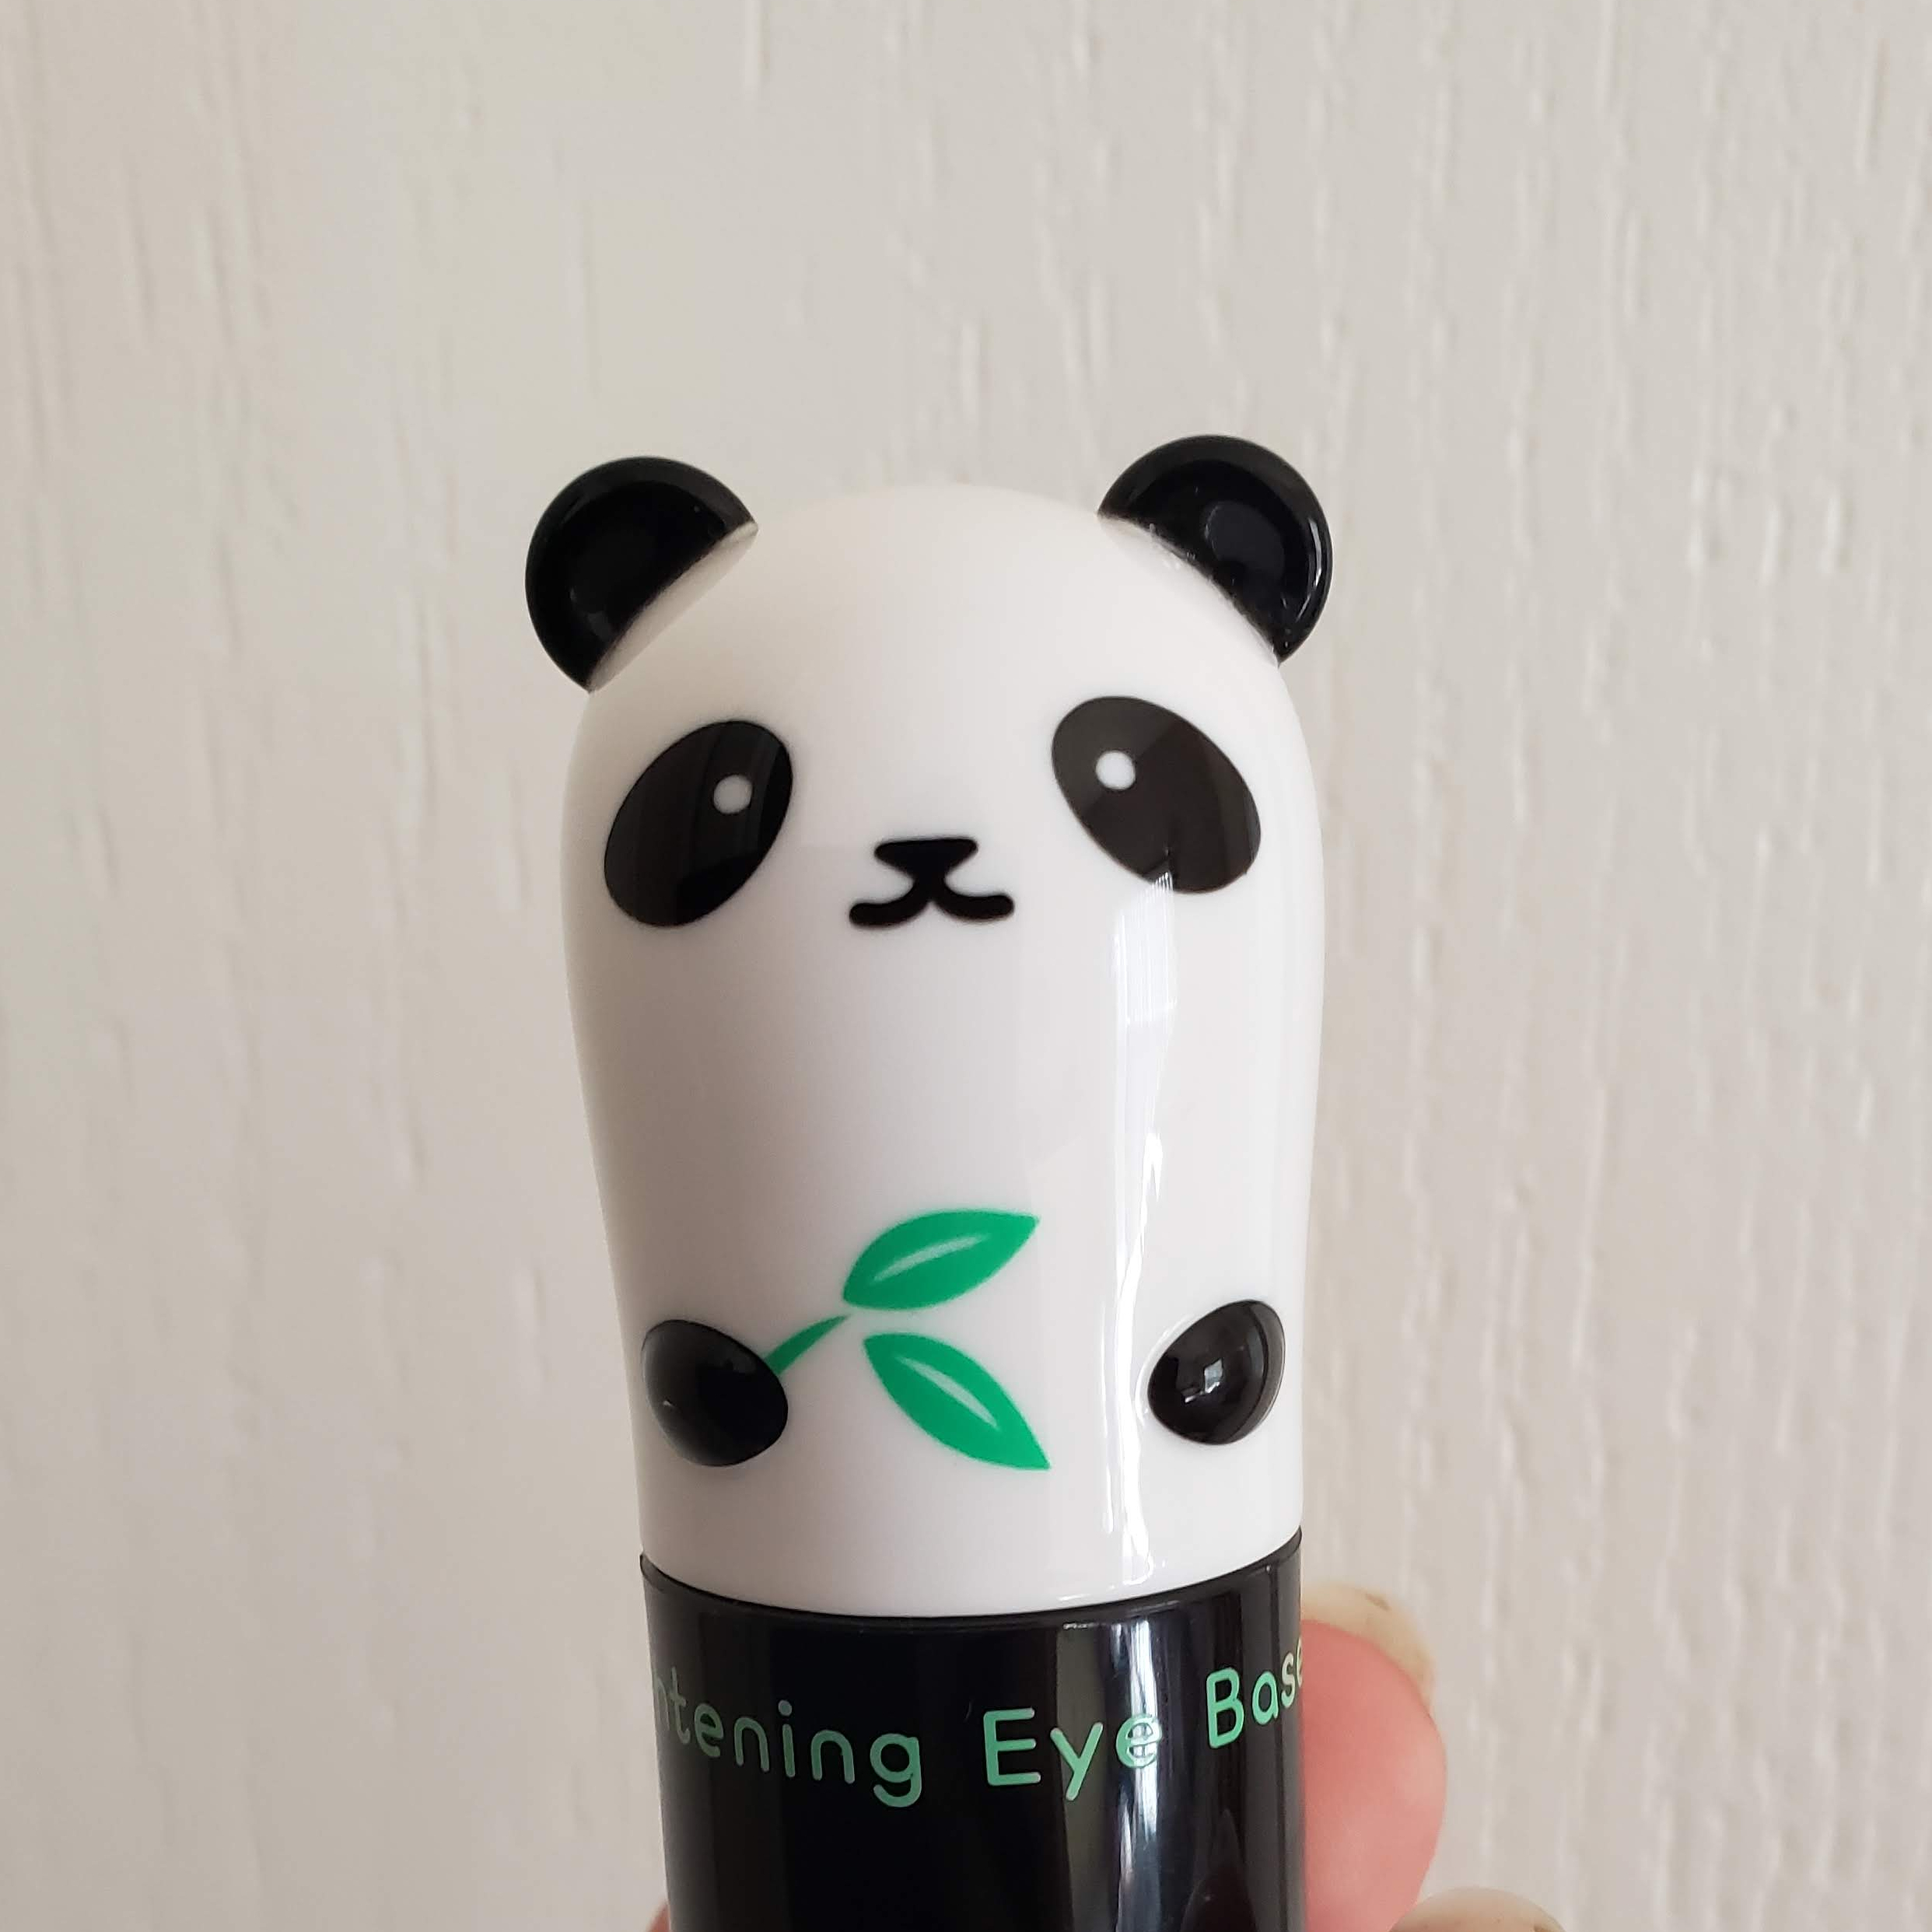 The container for the Brightening Eye Base is slightly bigger than a lipstick, and is much cuter with the panda face on it.